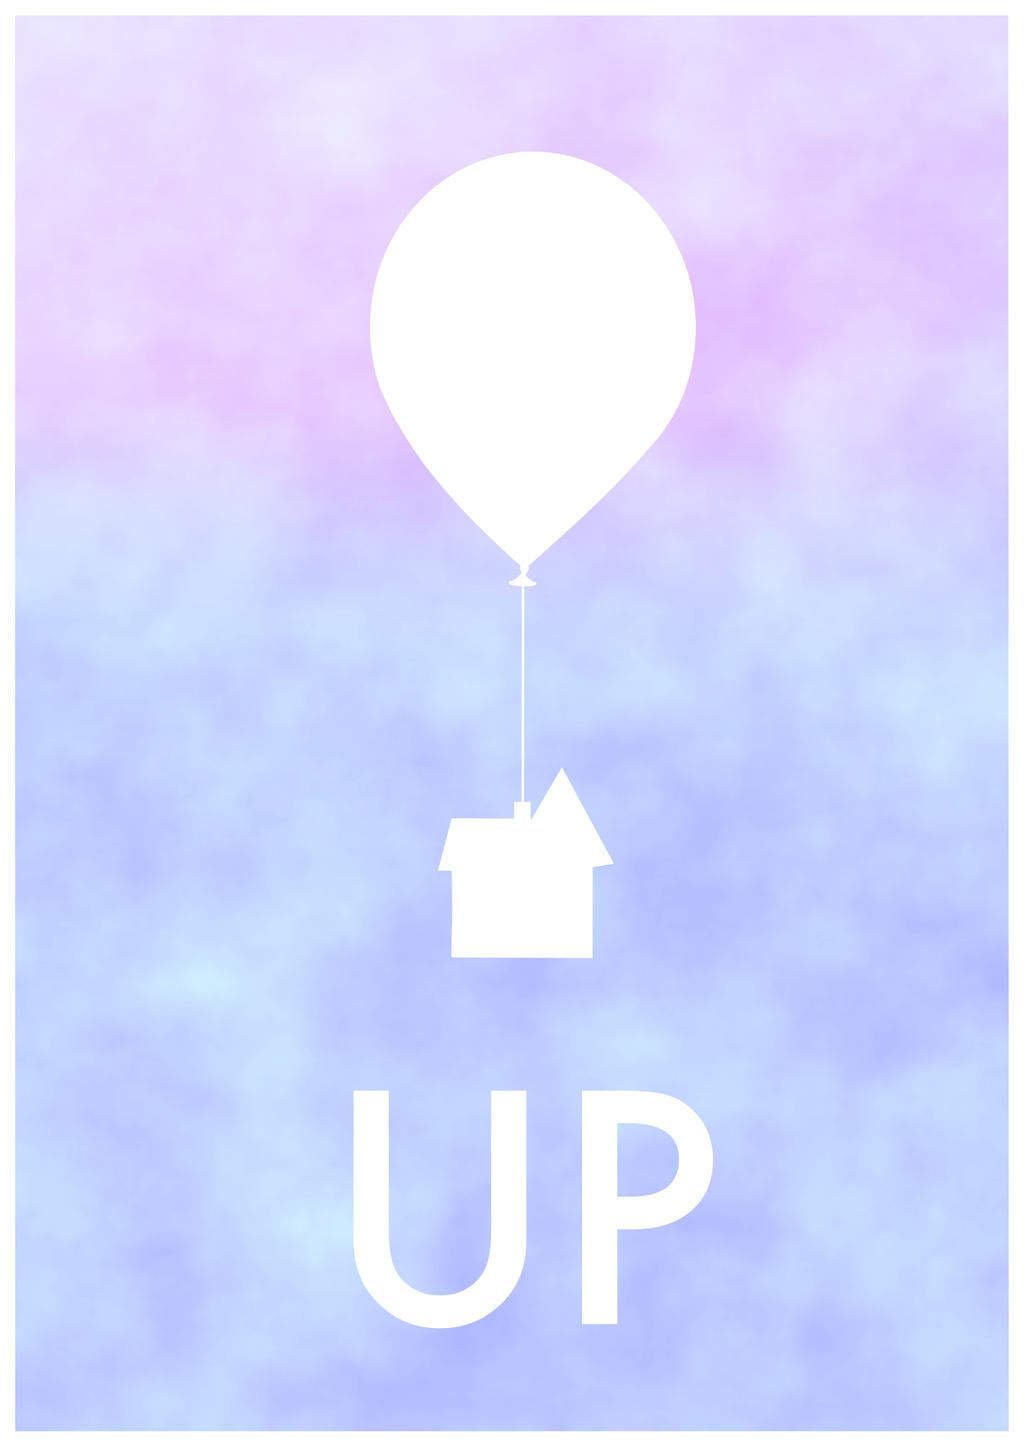 Up minimal poster by cw posters on deviantart for Minimal art kunstwerke